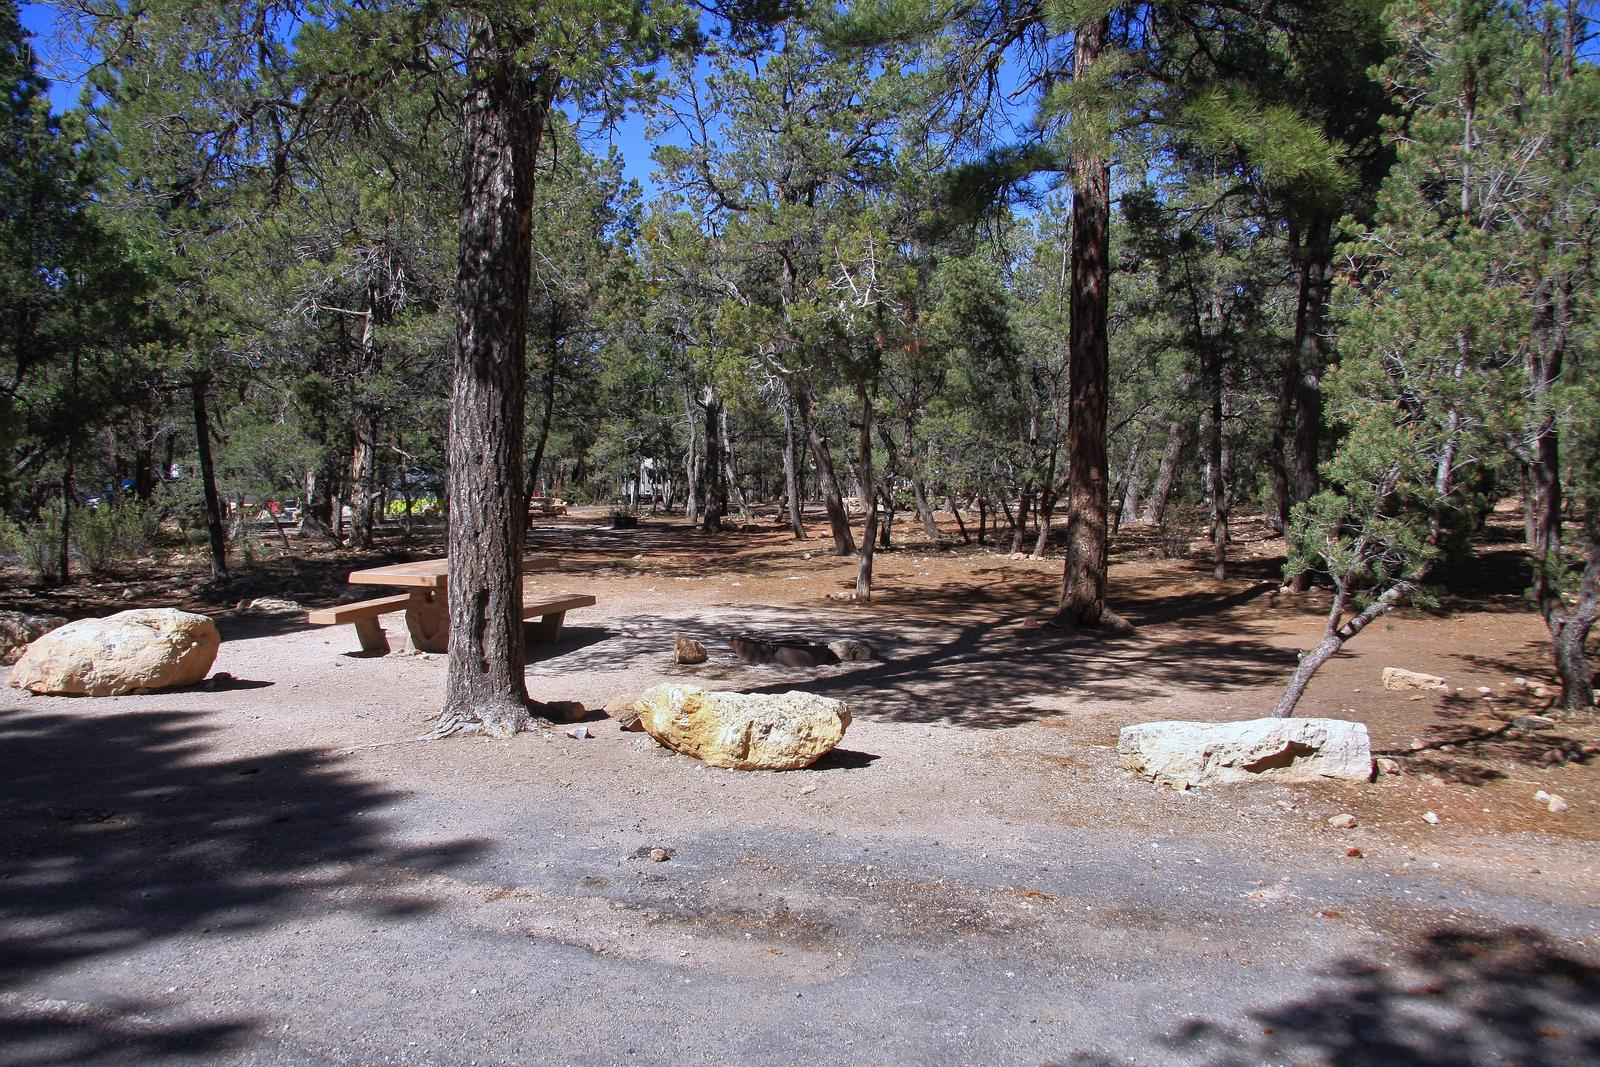 Picnic table, fire pit, and parking spot, Mather CampgroundPicnic table, fire pit, and parking spot for Fir Loop 78, Mather Campground